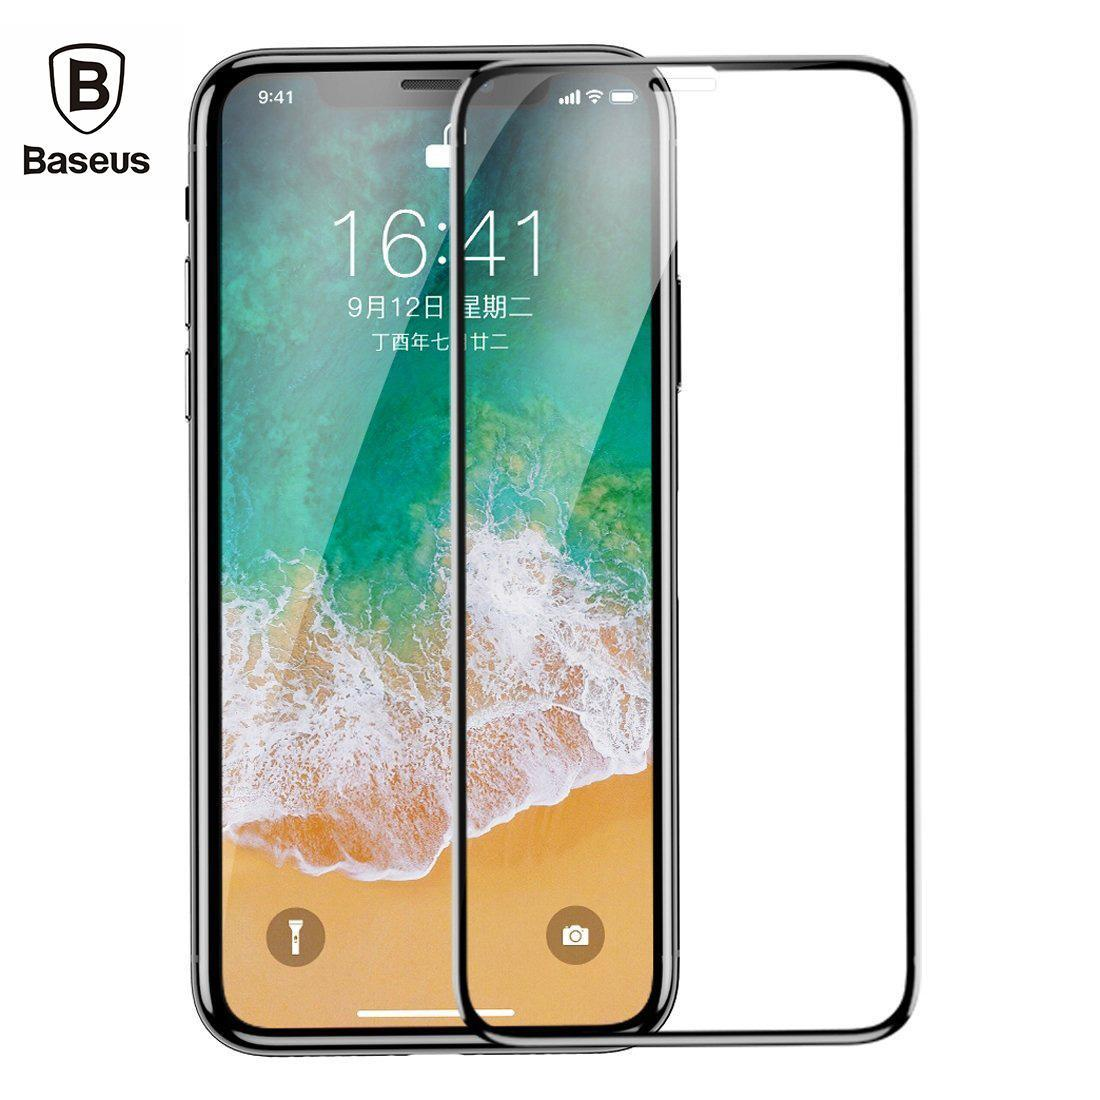 Baseus iPhone XS Max / XS / X / XR 4D Arc Tempered Glass Screen Protector